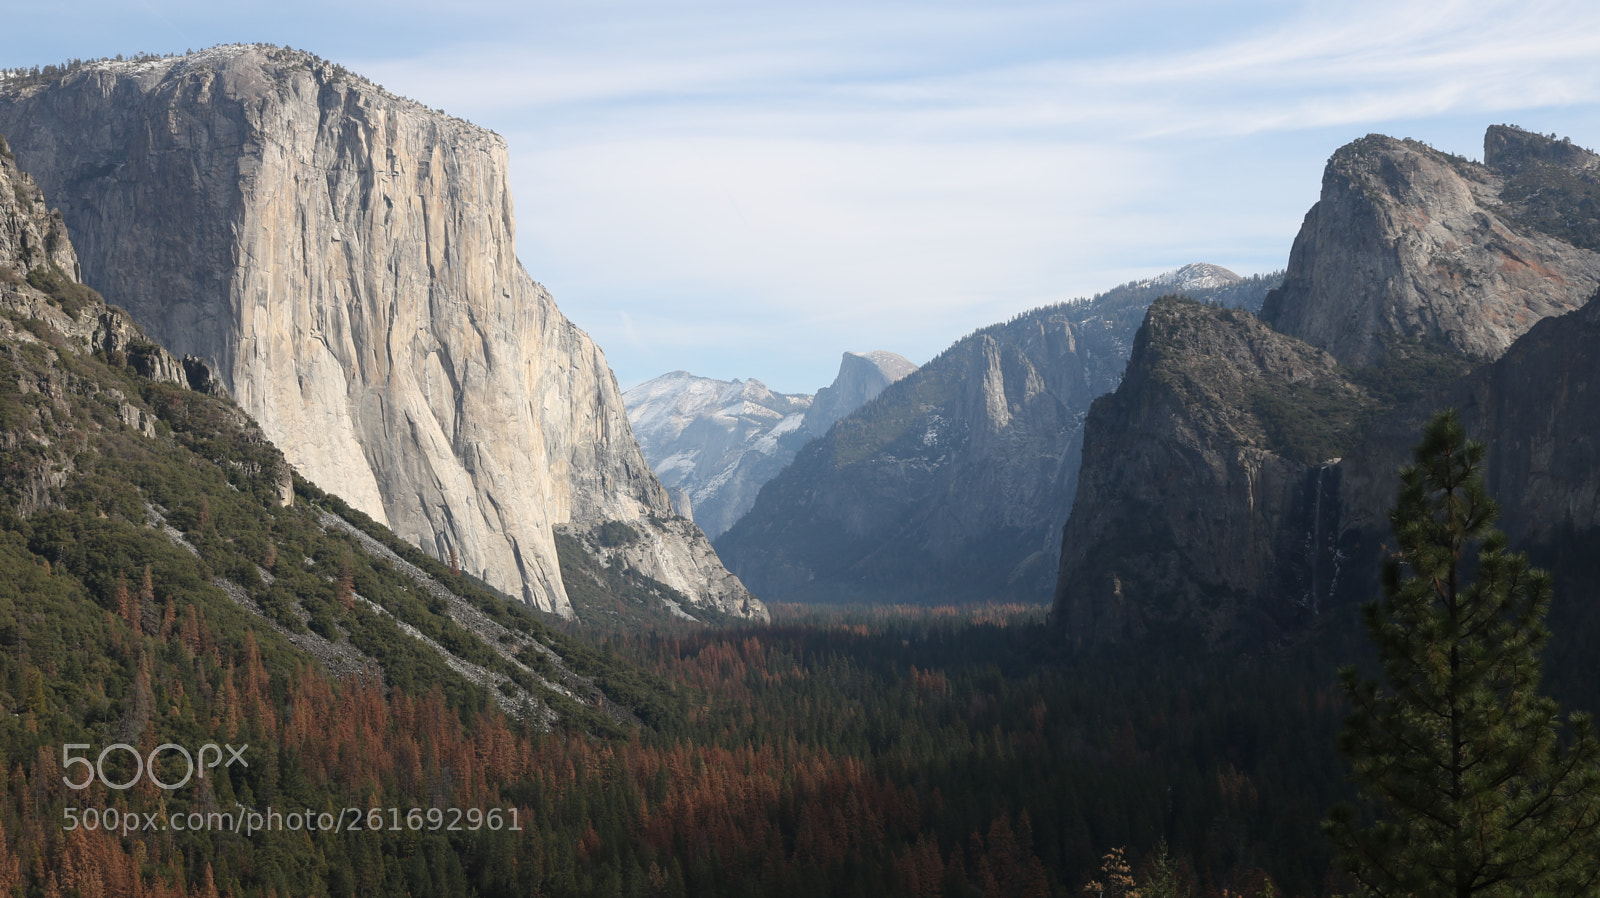 Yosemite National Park, Canon EOS REBEL T6I, Canon EF-S 18-55mm f/3.5-5.6 IS STM